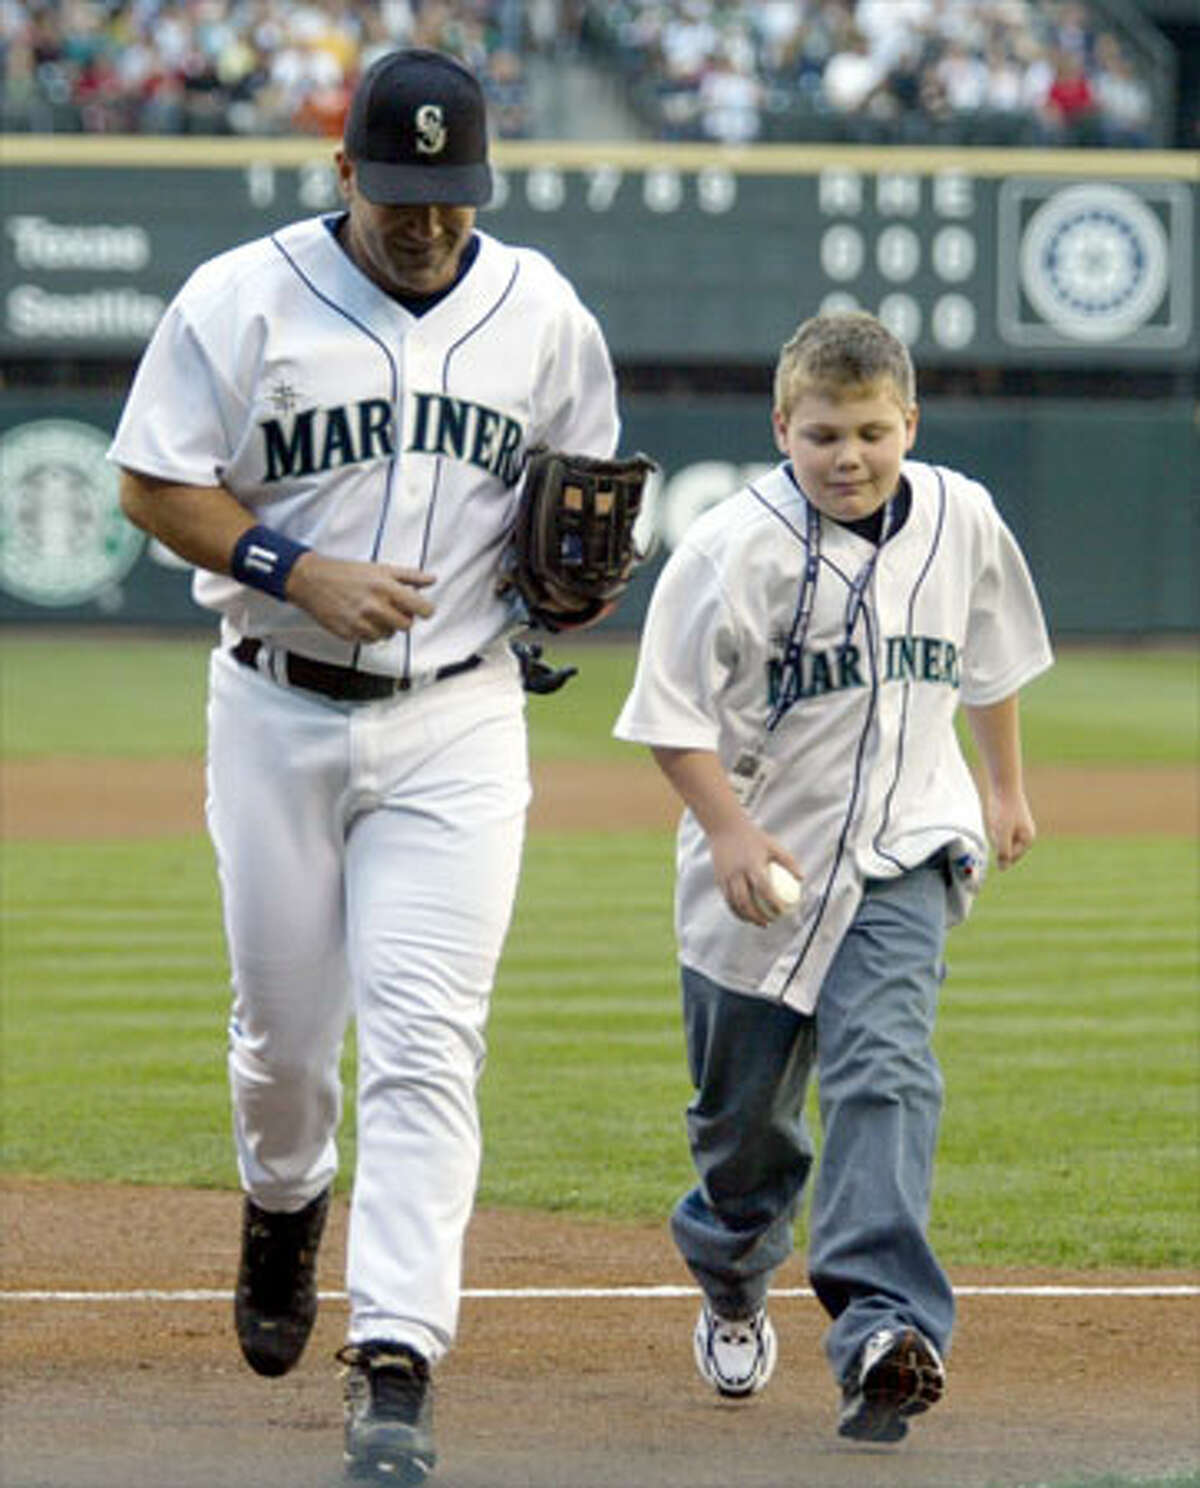 Mariners Edgar Martinez and his son Alex leave the field after throwing the ceremonial first pitch before the game against the Texas Rangers.